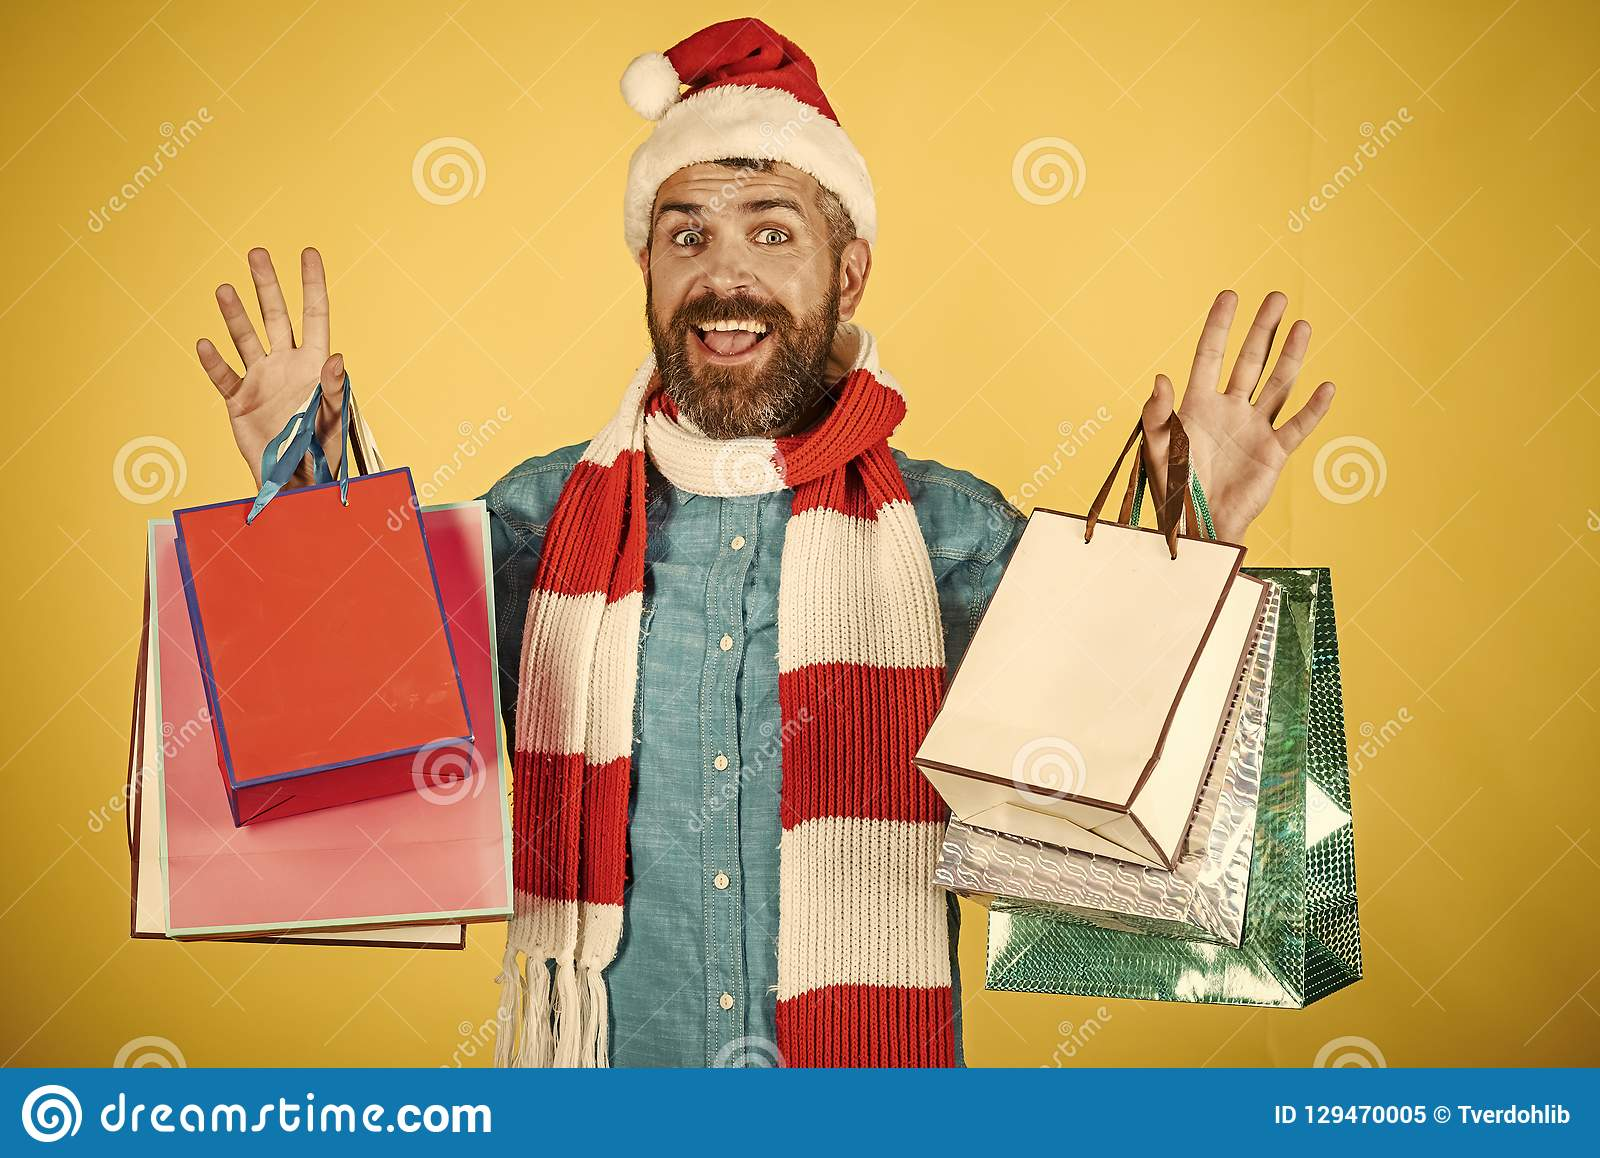 64fdab60958f7 Christmas hipster shopper smile in santa hat and scarf. Man hold shopping  bags on yellow background. New year